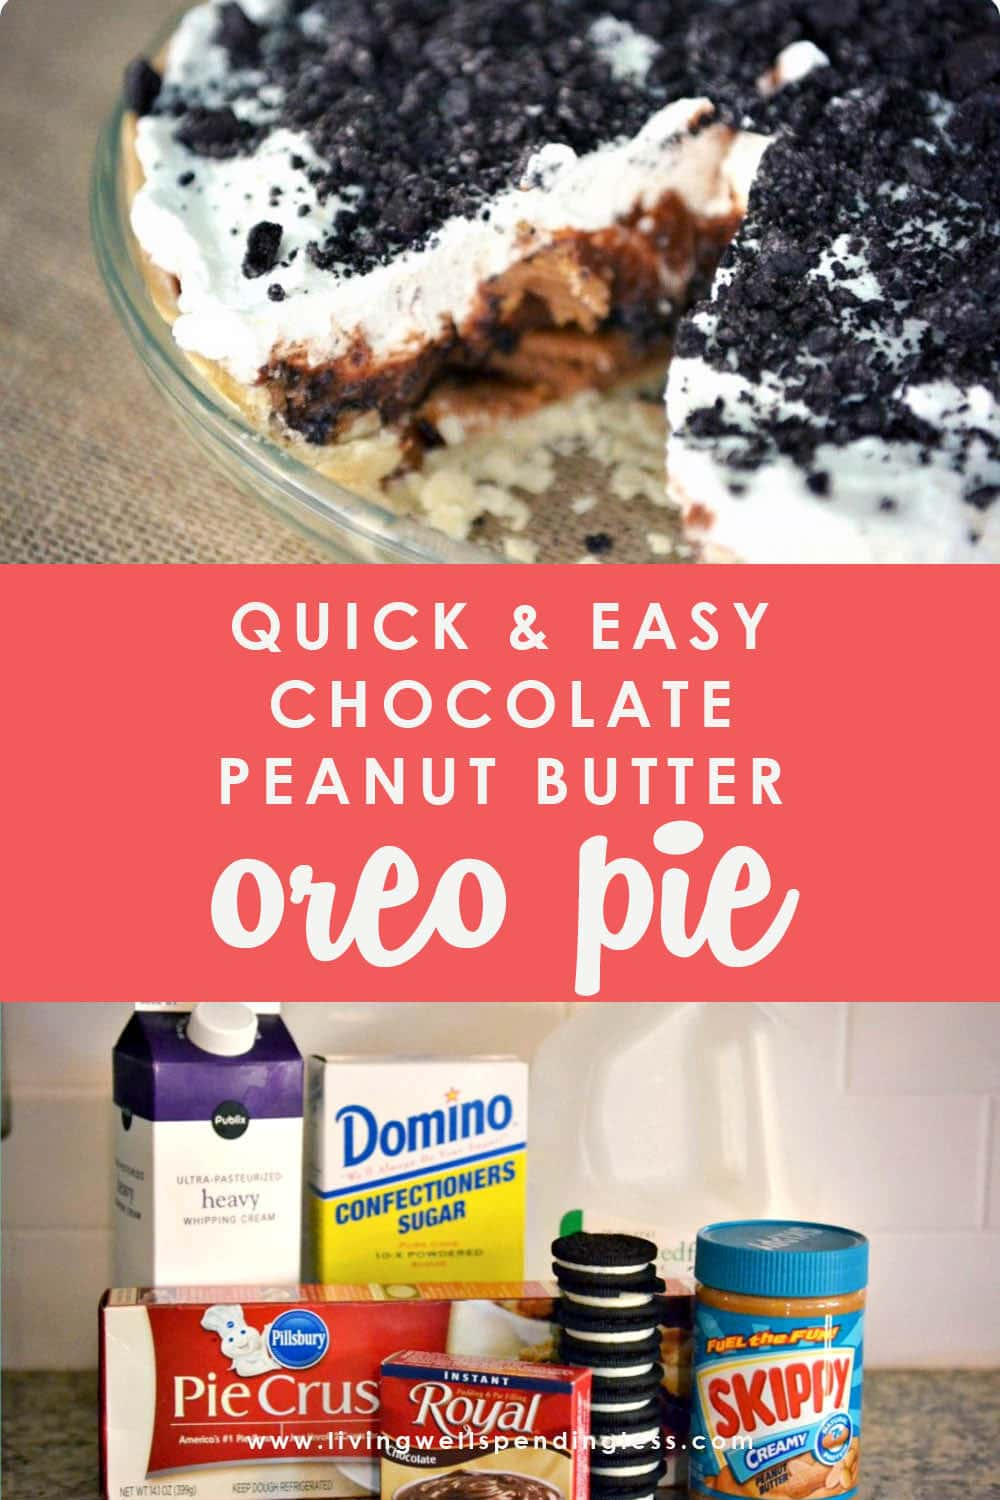 Looking for a decadent dessert? This chocolate peanut butter Oreo pie comes together in just a few minutes and is a sweet treat everyone will devour! #quickeasychocolatepie #dessert #pie #chocolatepeanutbutterpie